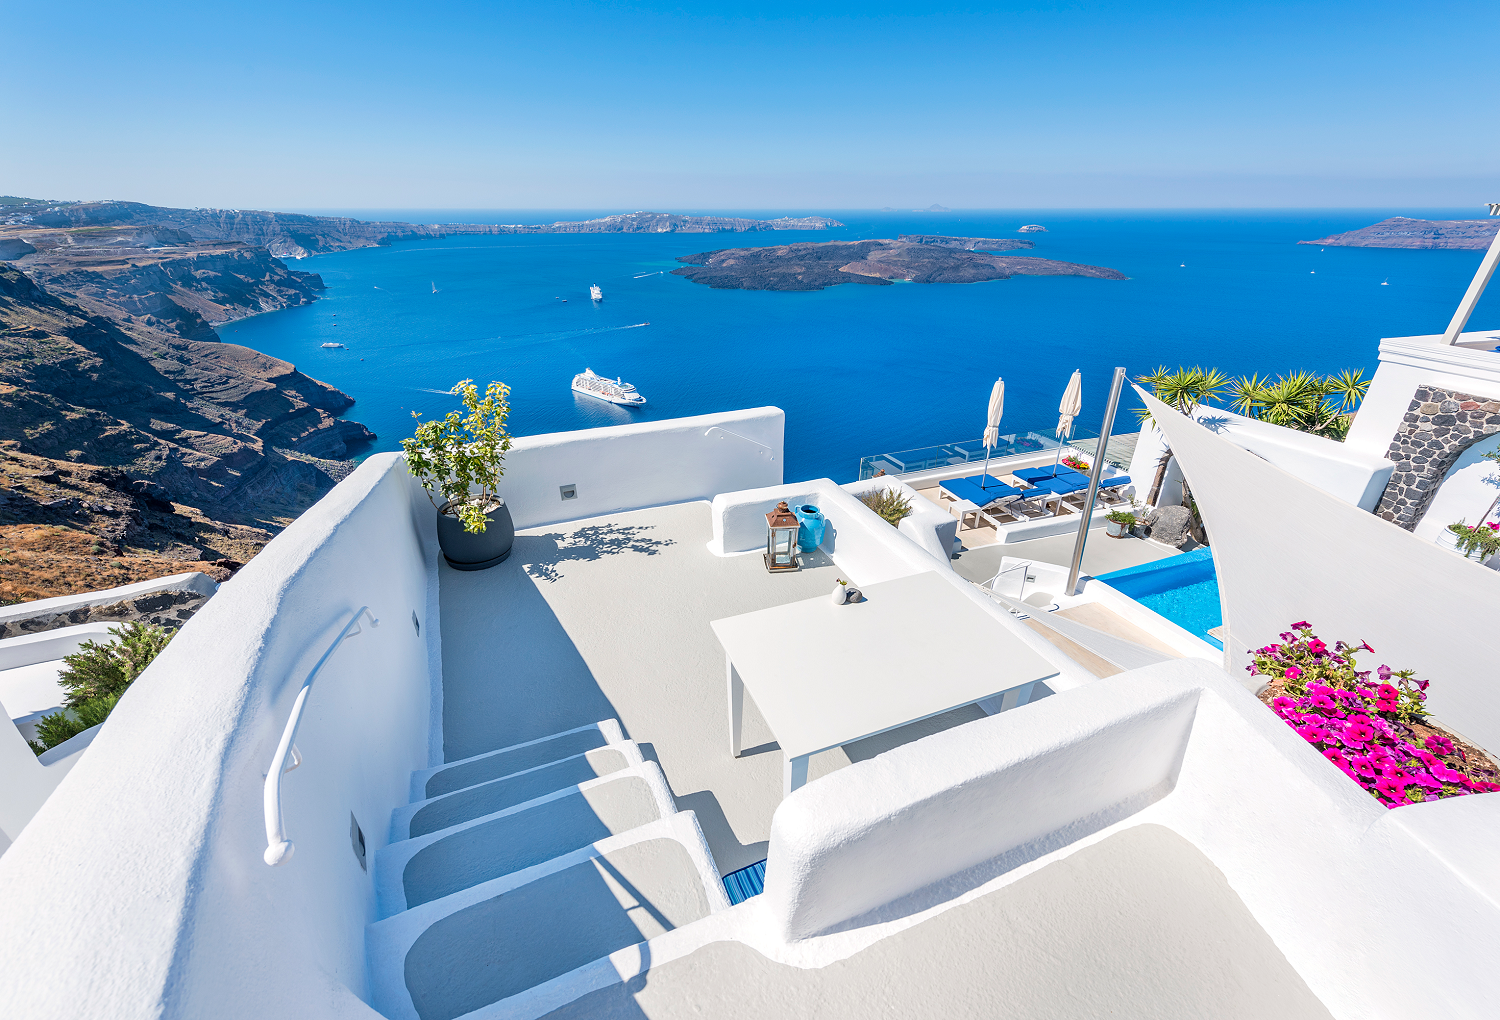 Cleo Anderson's Ultimate Guide To Santorini